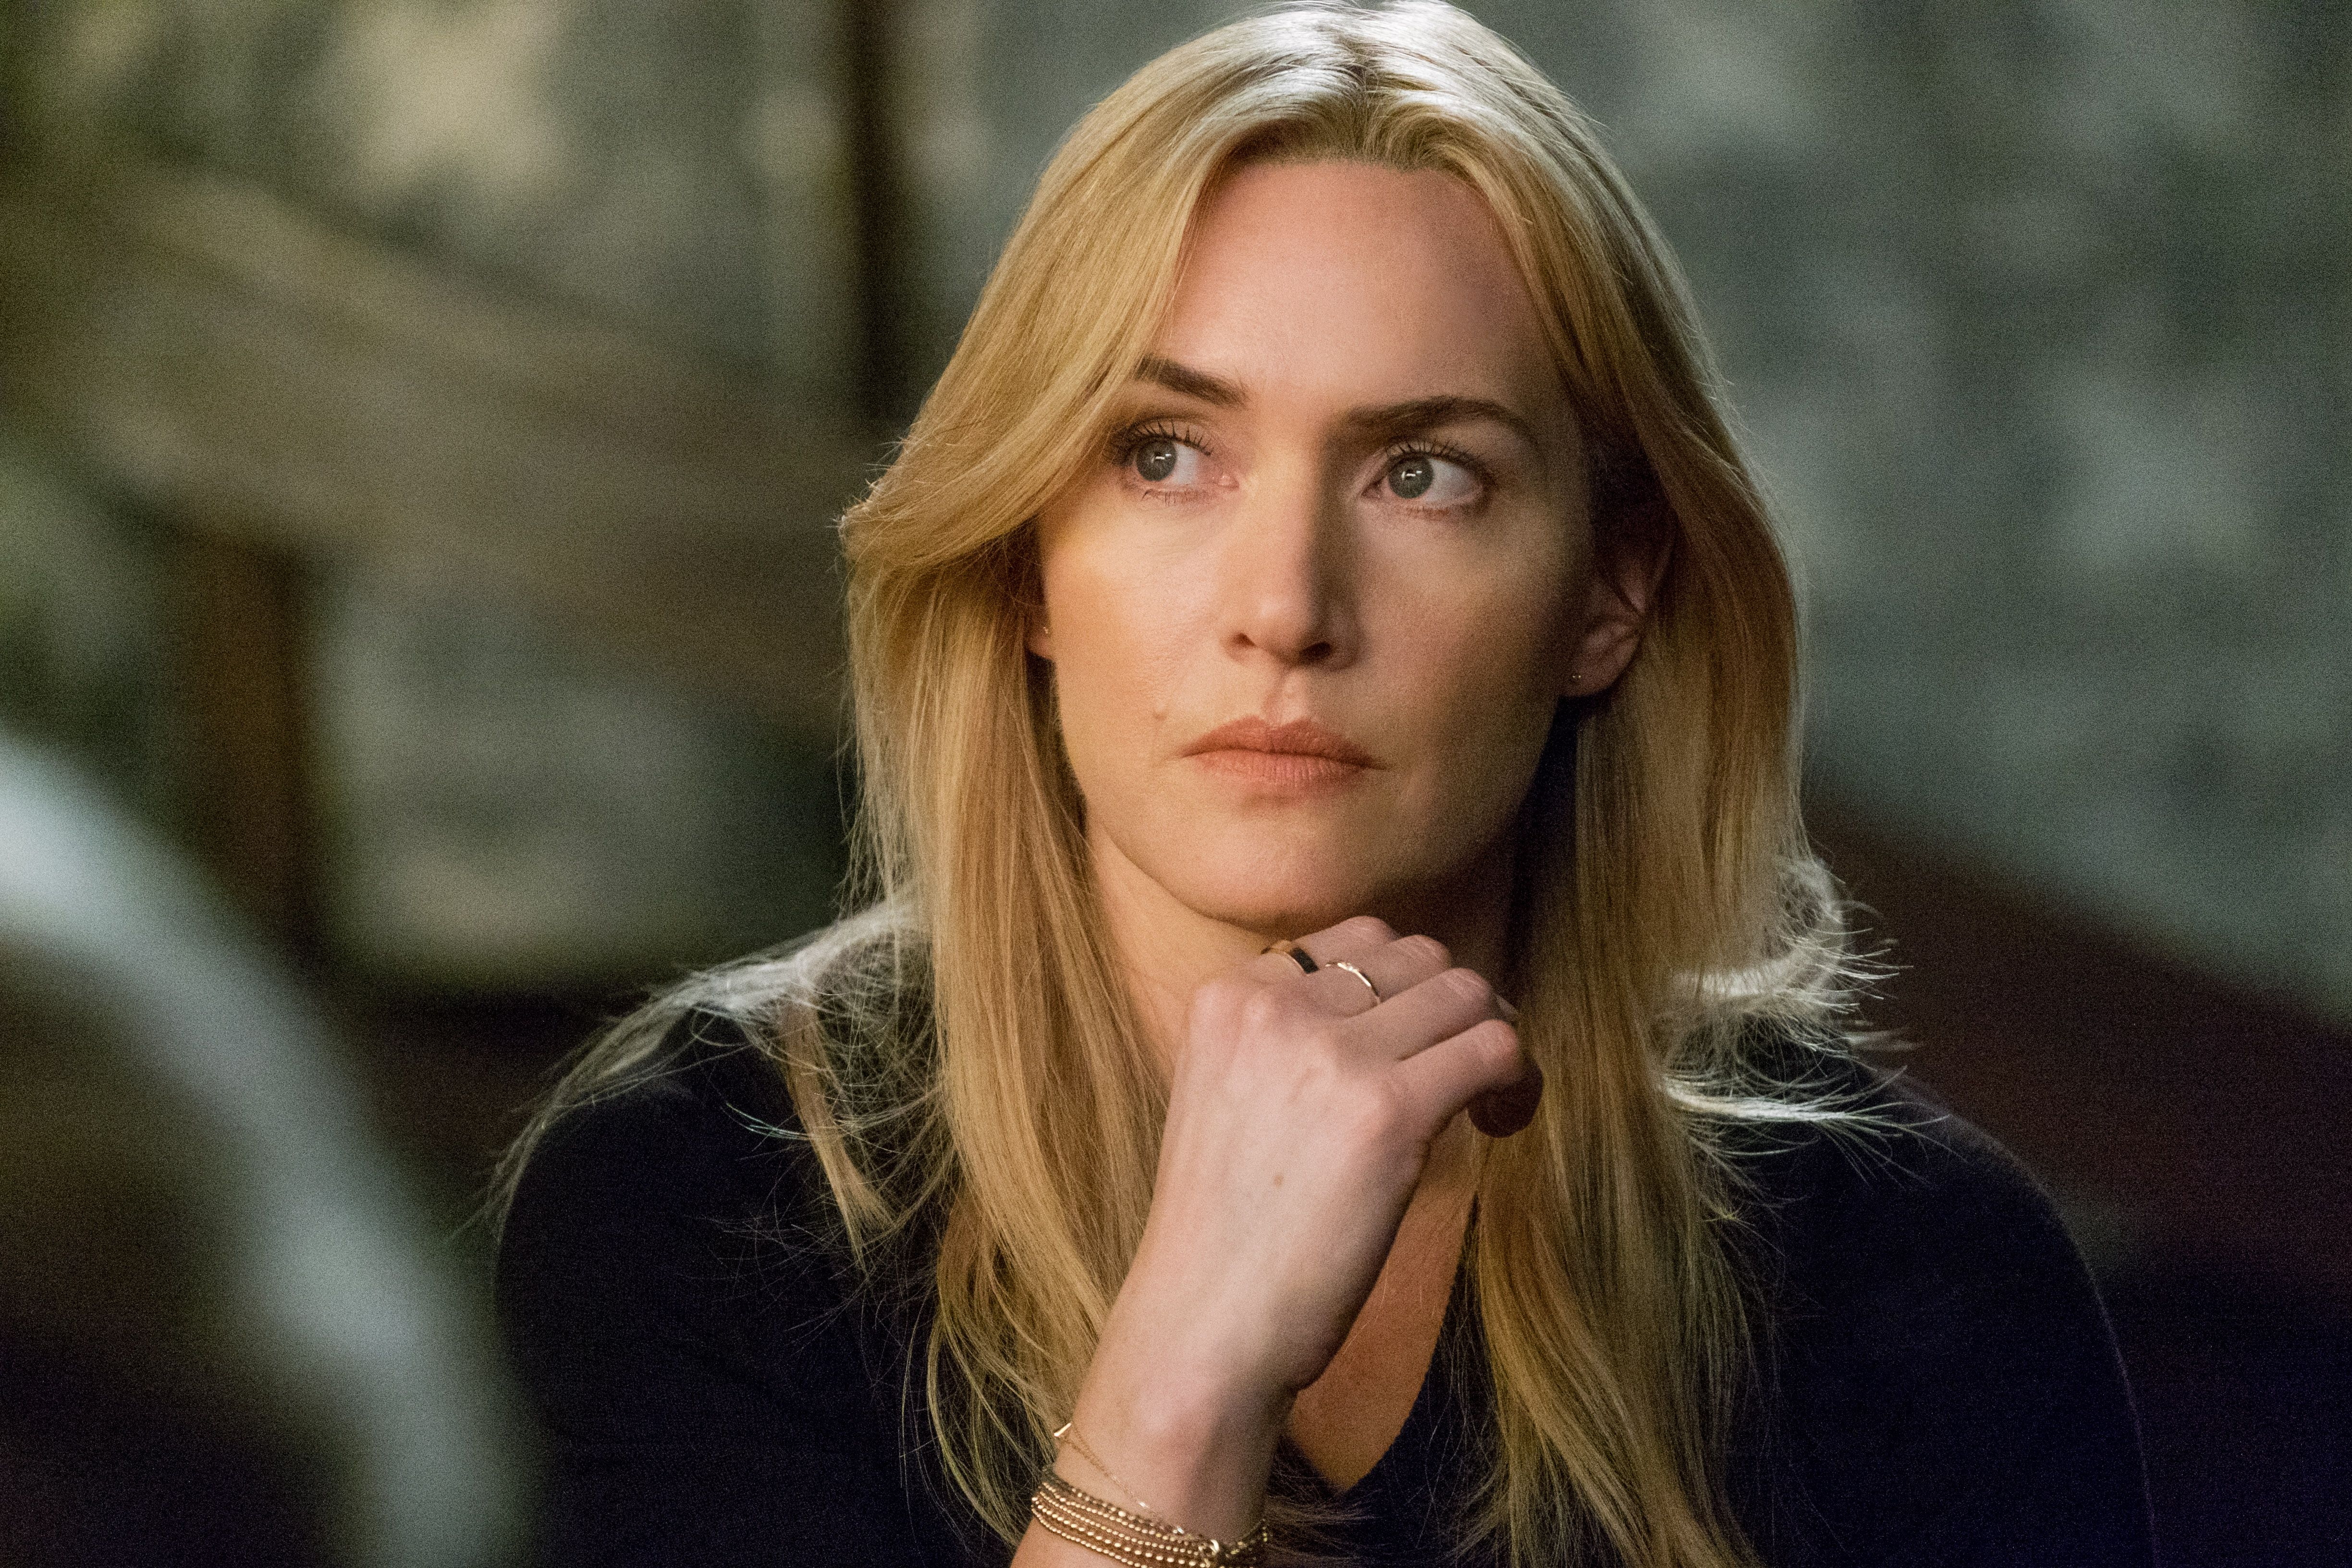 Collateral Beauty Movie Still 2016 Kate Winslet As Claire Wilson Kate Winslet Titanic Kate Winslet Collateral Beauty Movie